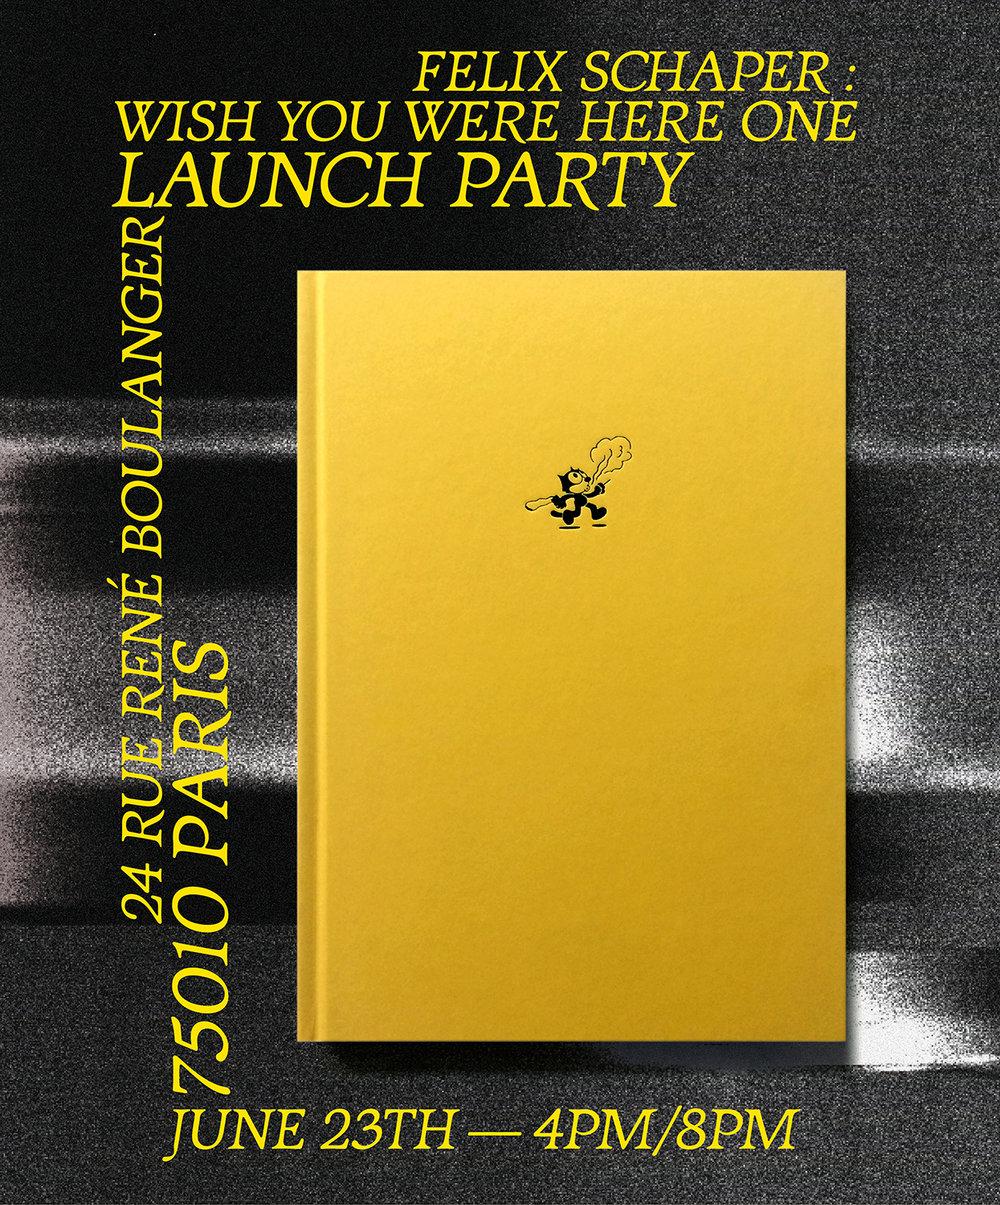 BOOK LAUNCH INVITATION.jpg